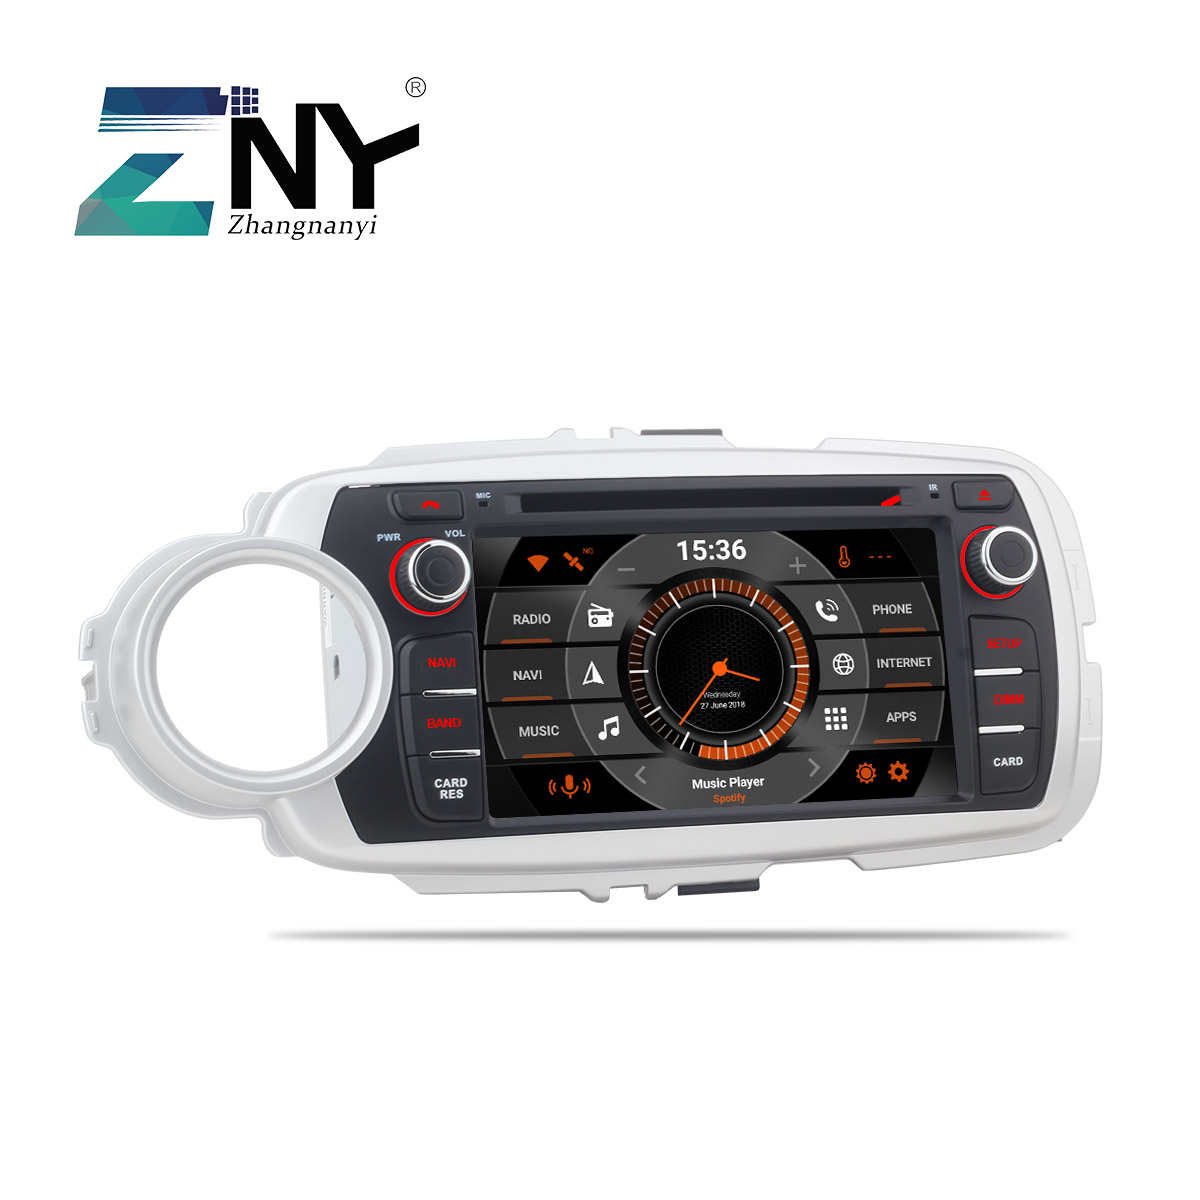 7 Android 8.0 Car Stereo GPS For Toyota Yaris 2012 2013 2014 2015 2016 2017 Auto Radio FM DVD Video WiFi Navigation Rear Camera